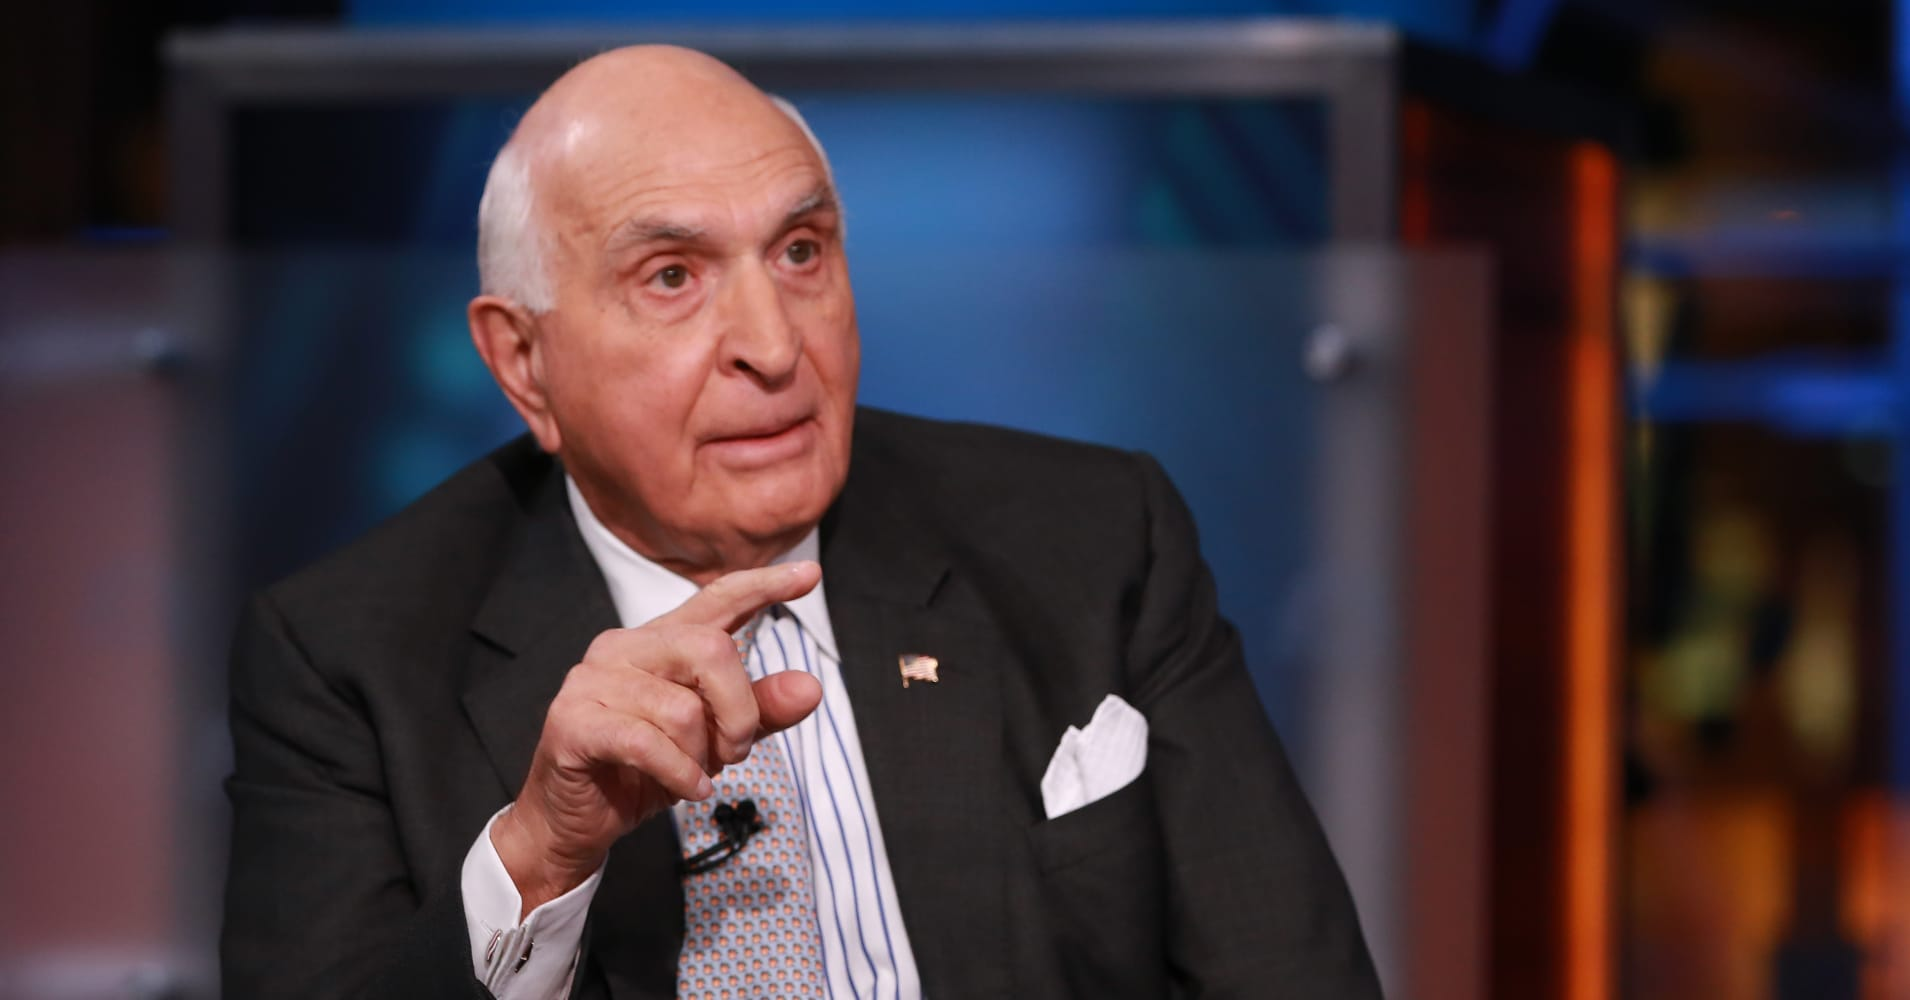 Langone to Trump: It's great to honor job-saving promises, but US is not a managed economy